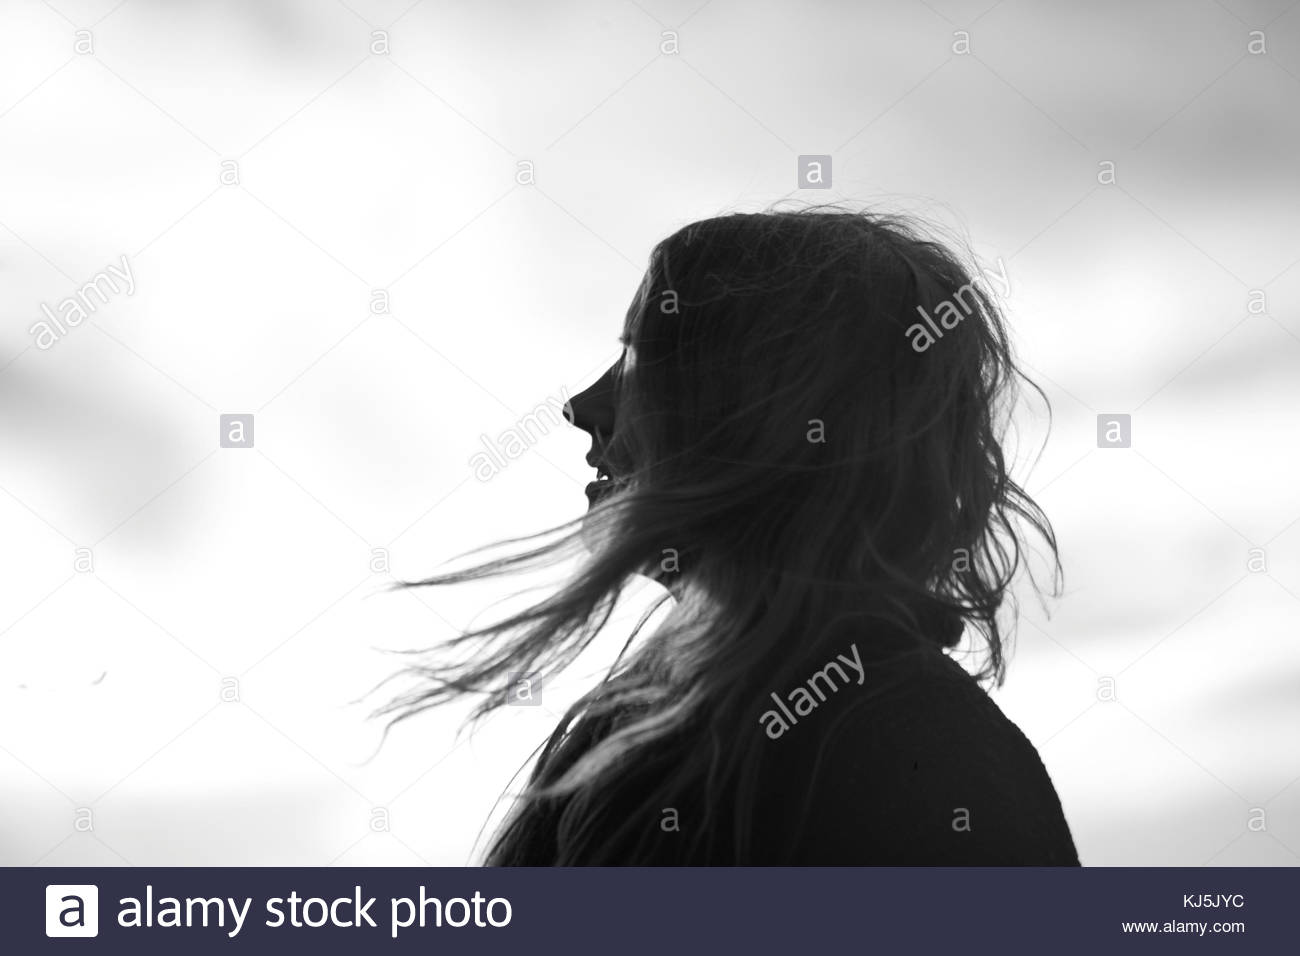 Silhouette of young woman with wind in her hair - Stock Image